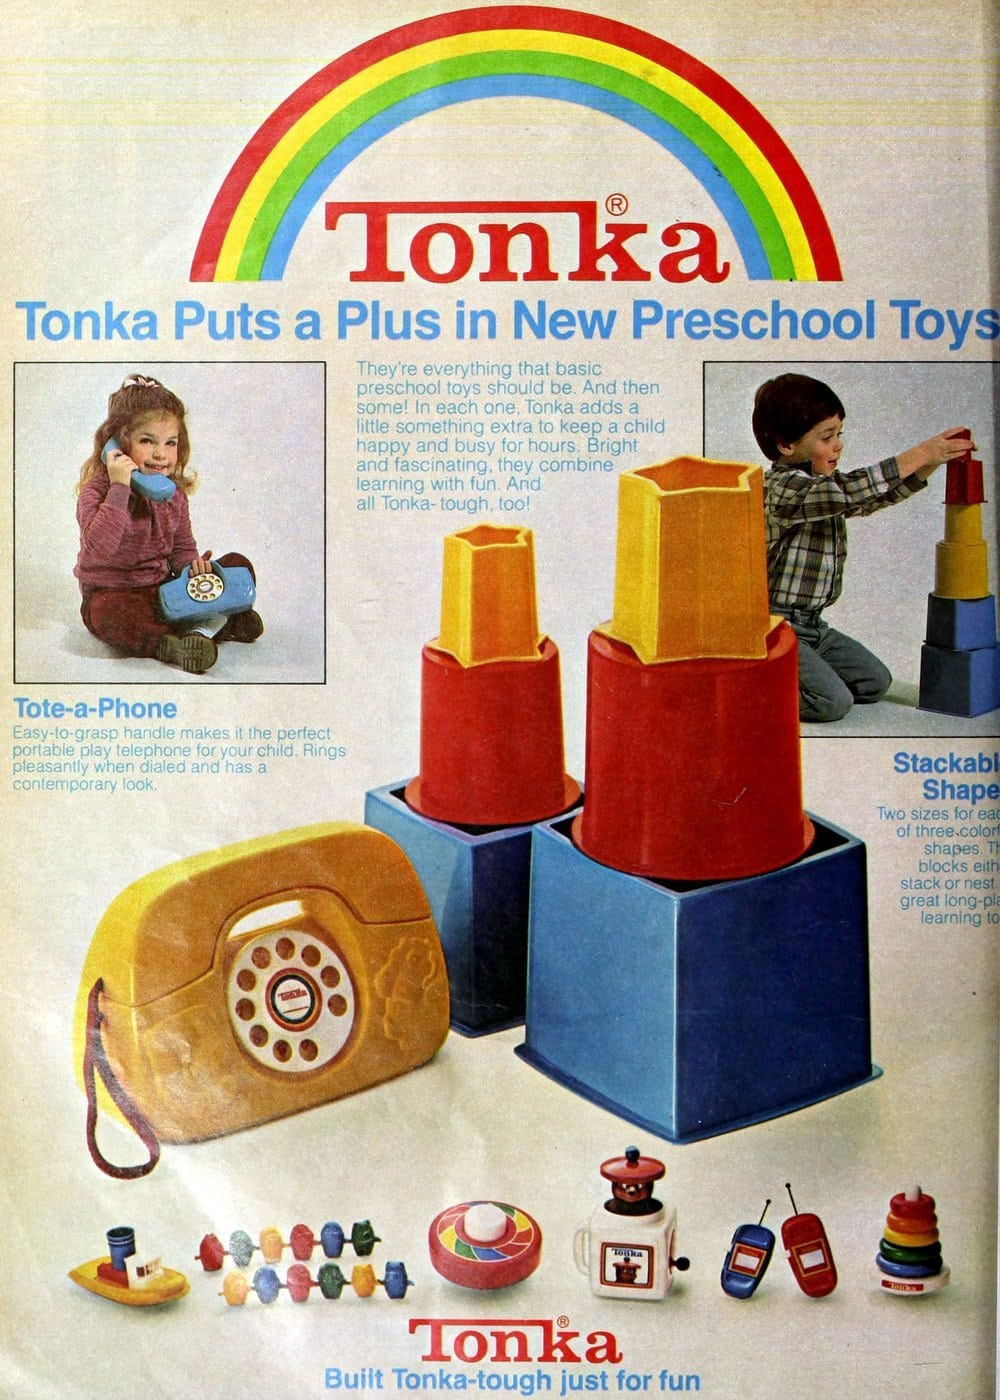 Tonka Tote-a-Phone and Stackable Shapes preschool toys (1980)